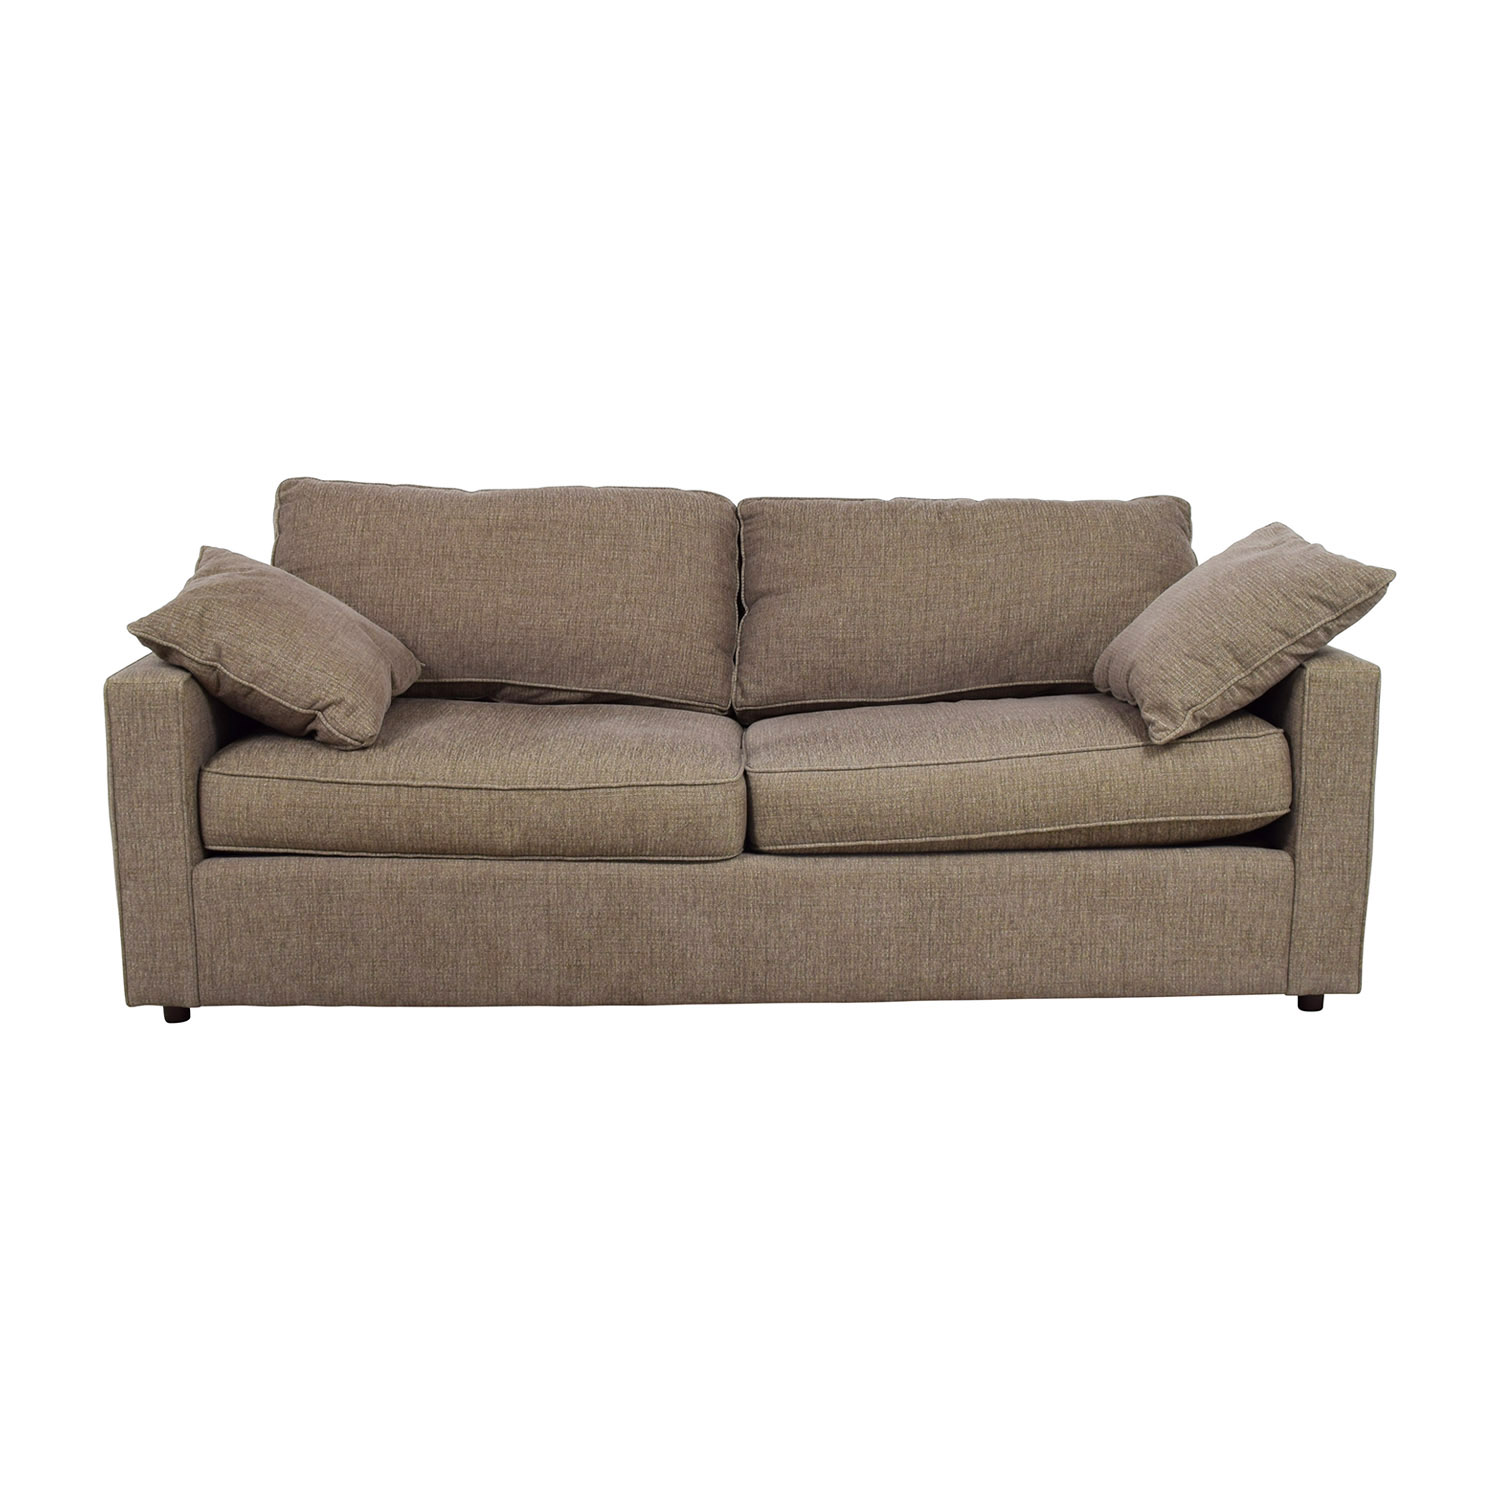 Room & Board Room & Board Brown Two-Cushion Sofa nyc